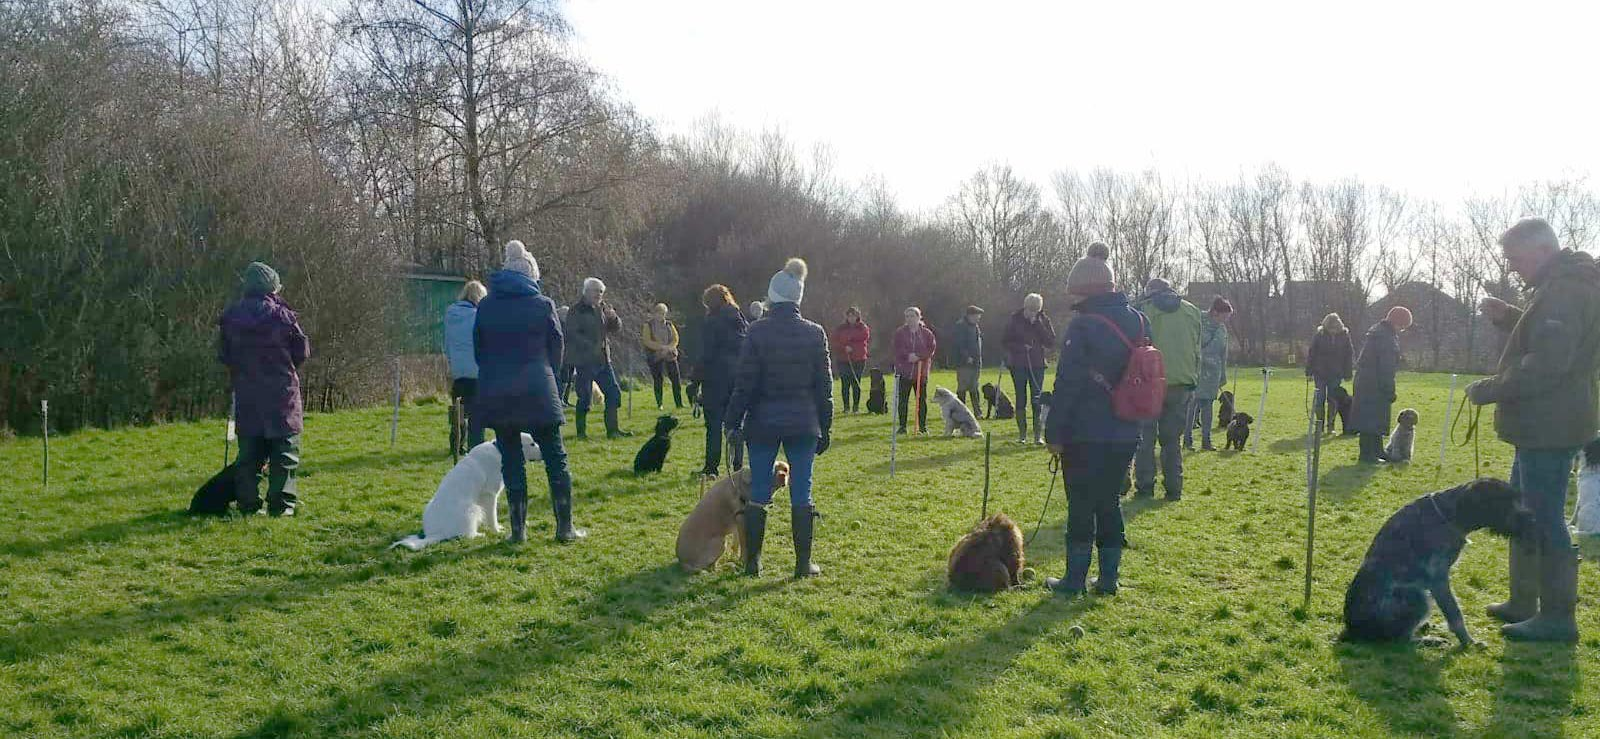 obedience training at the field with a big group